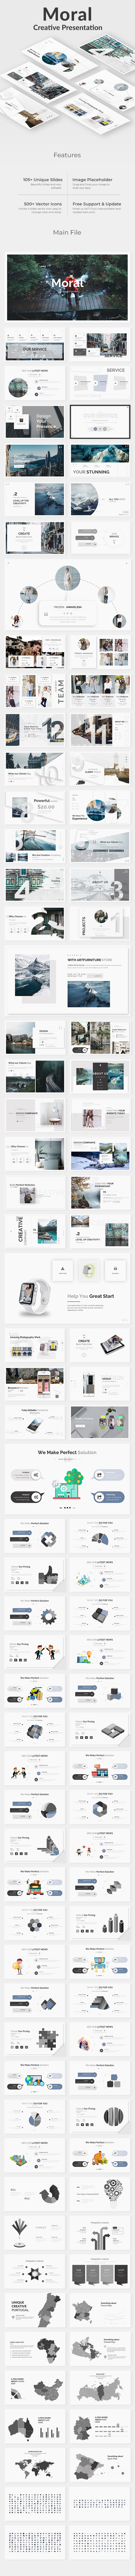 Moral Creative Powerpoint Template - Creative PowerPoint Templates